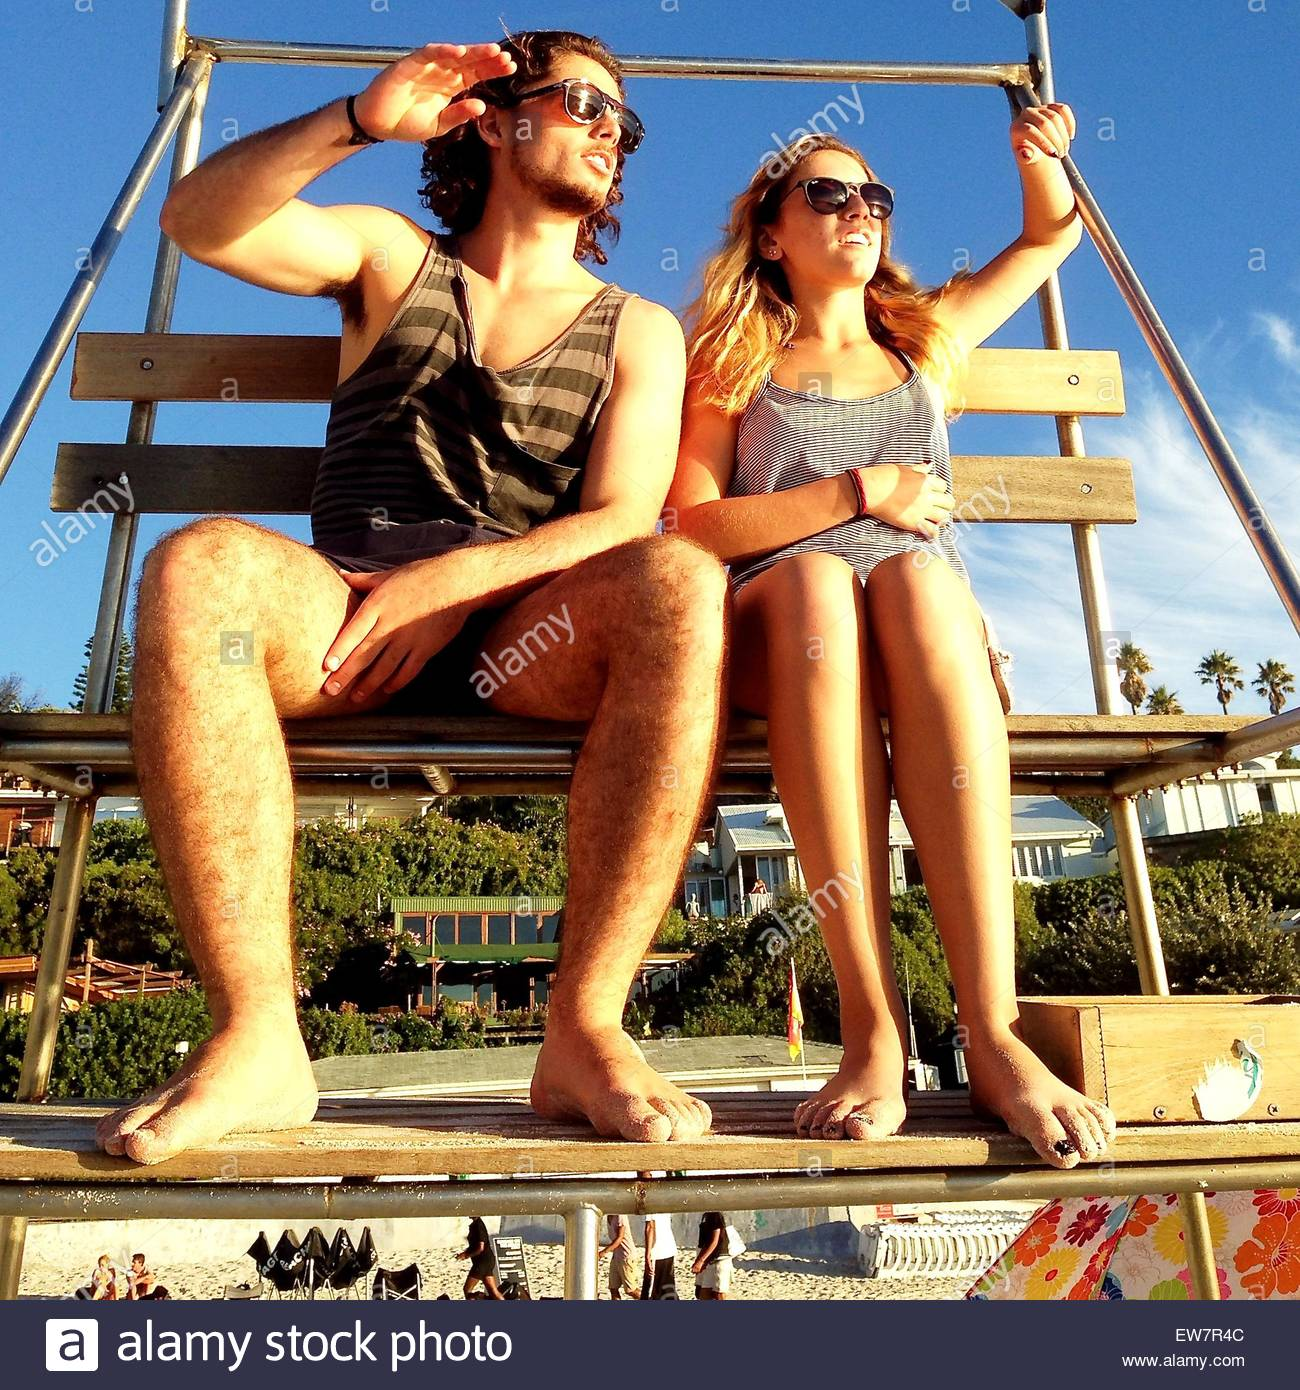 Man and woman sitting on a lifeguard tower, Clifton Beach, Cape Town, South Africa - Stock Image